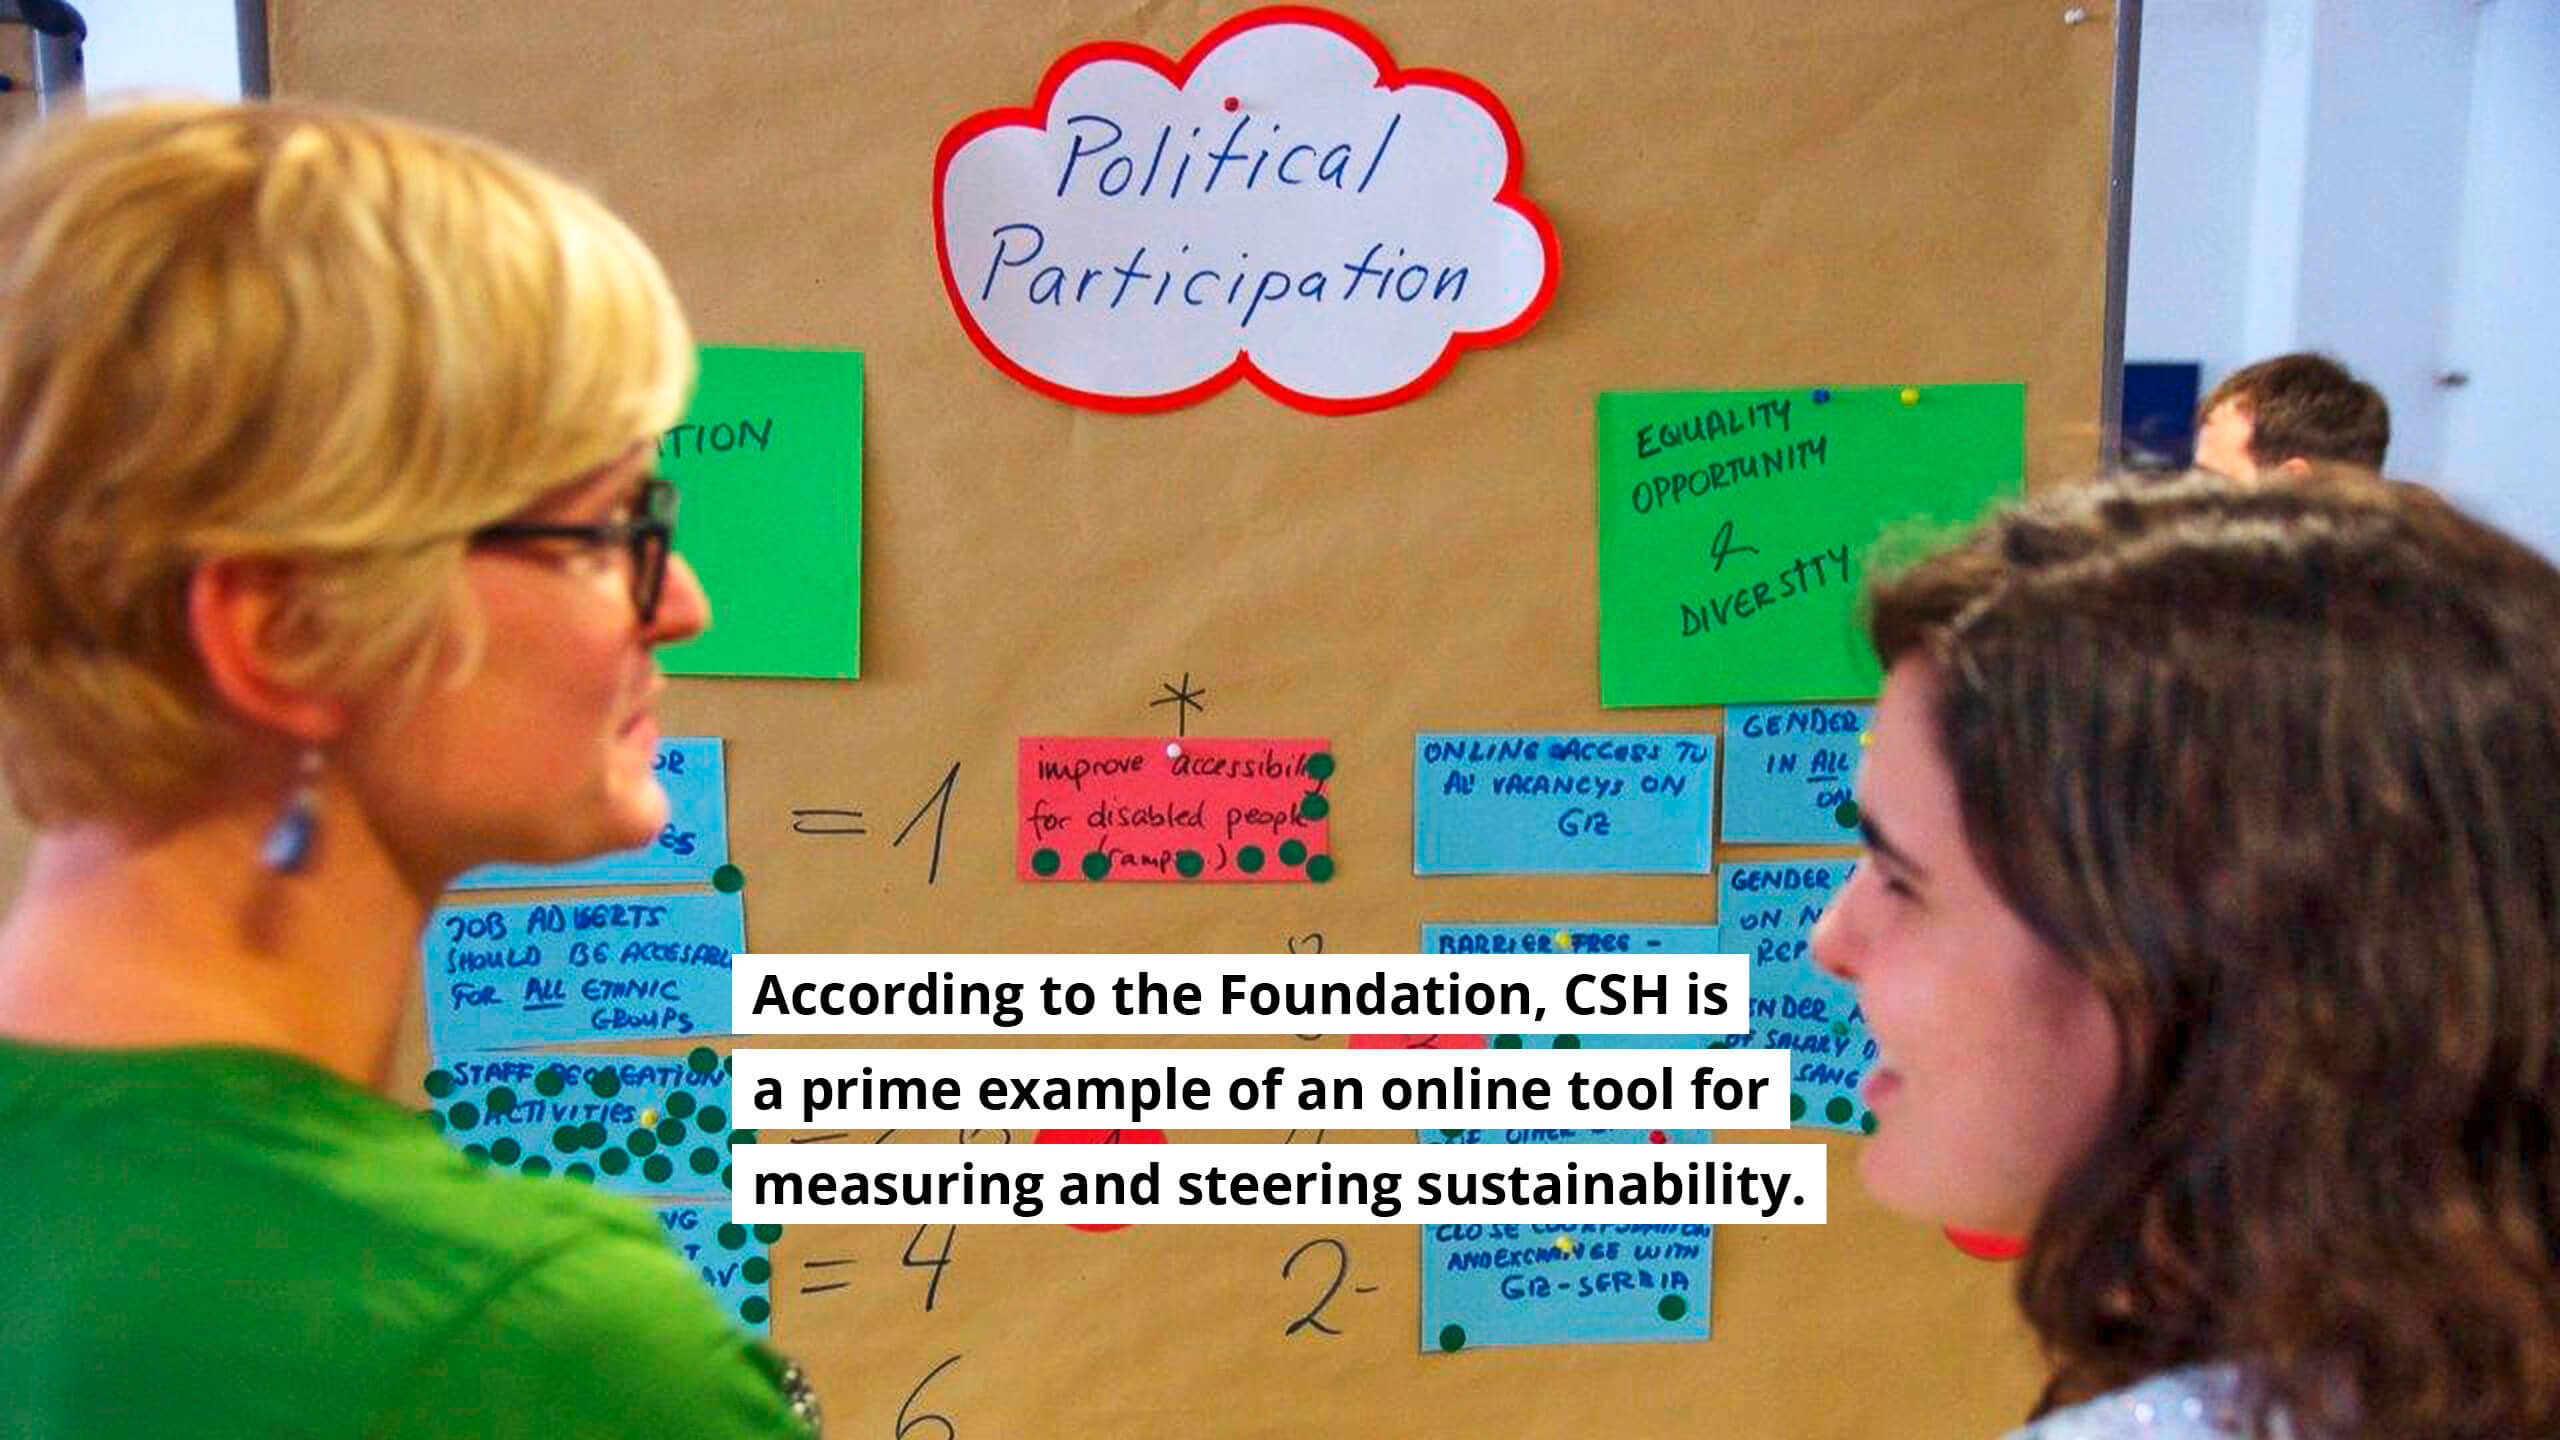 According to the Foundation, CSH is a prime example of an online tool for measuring and steering sustainability.